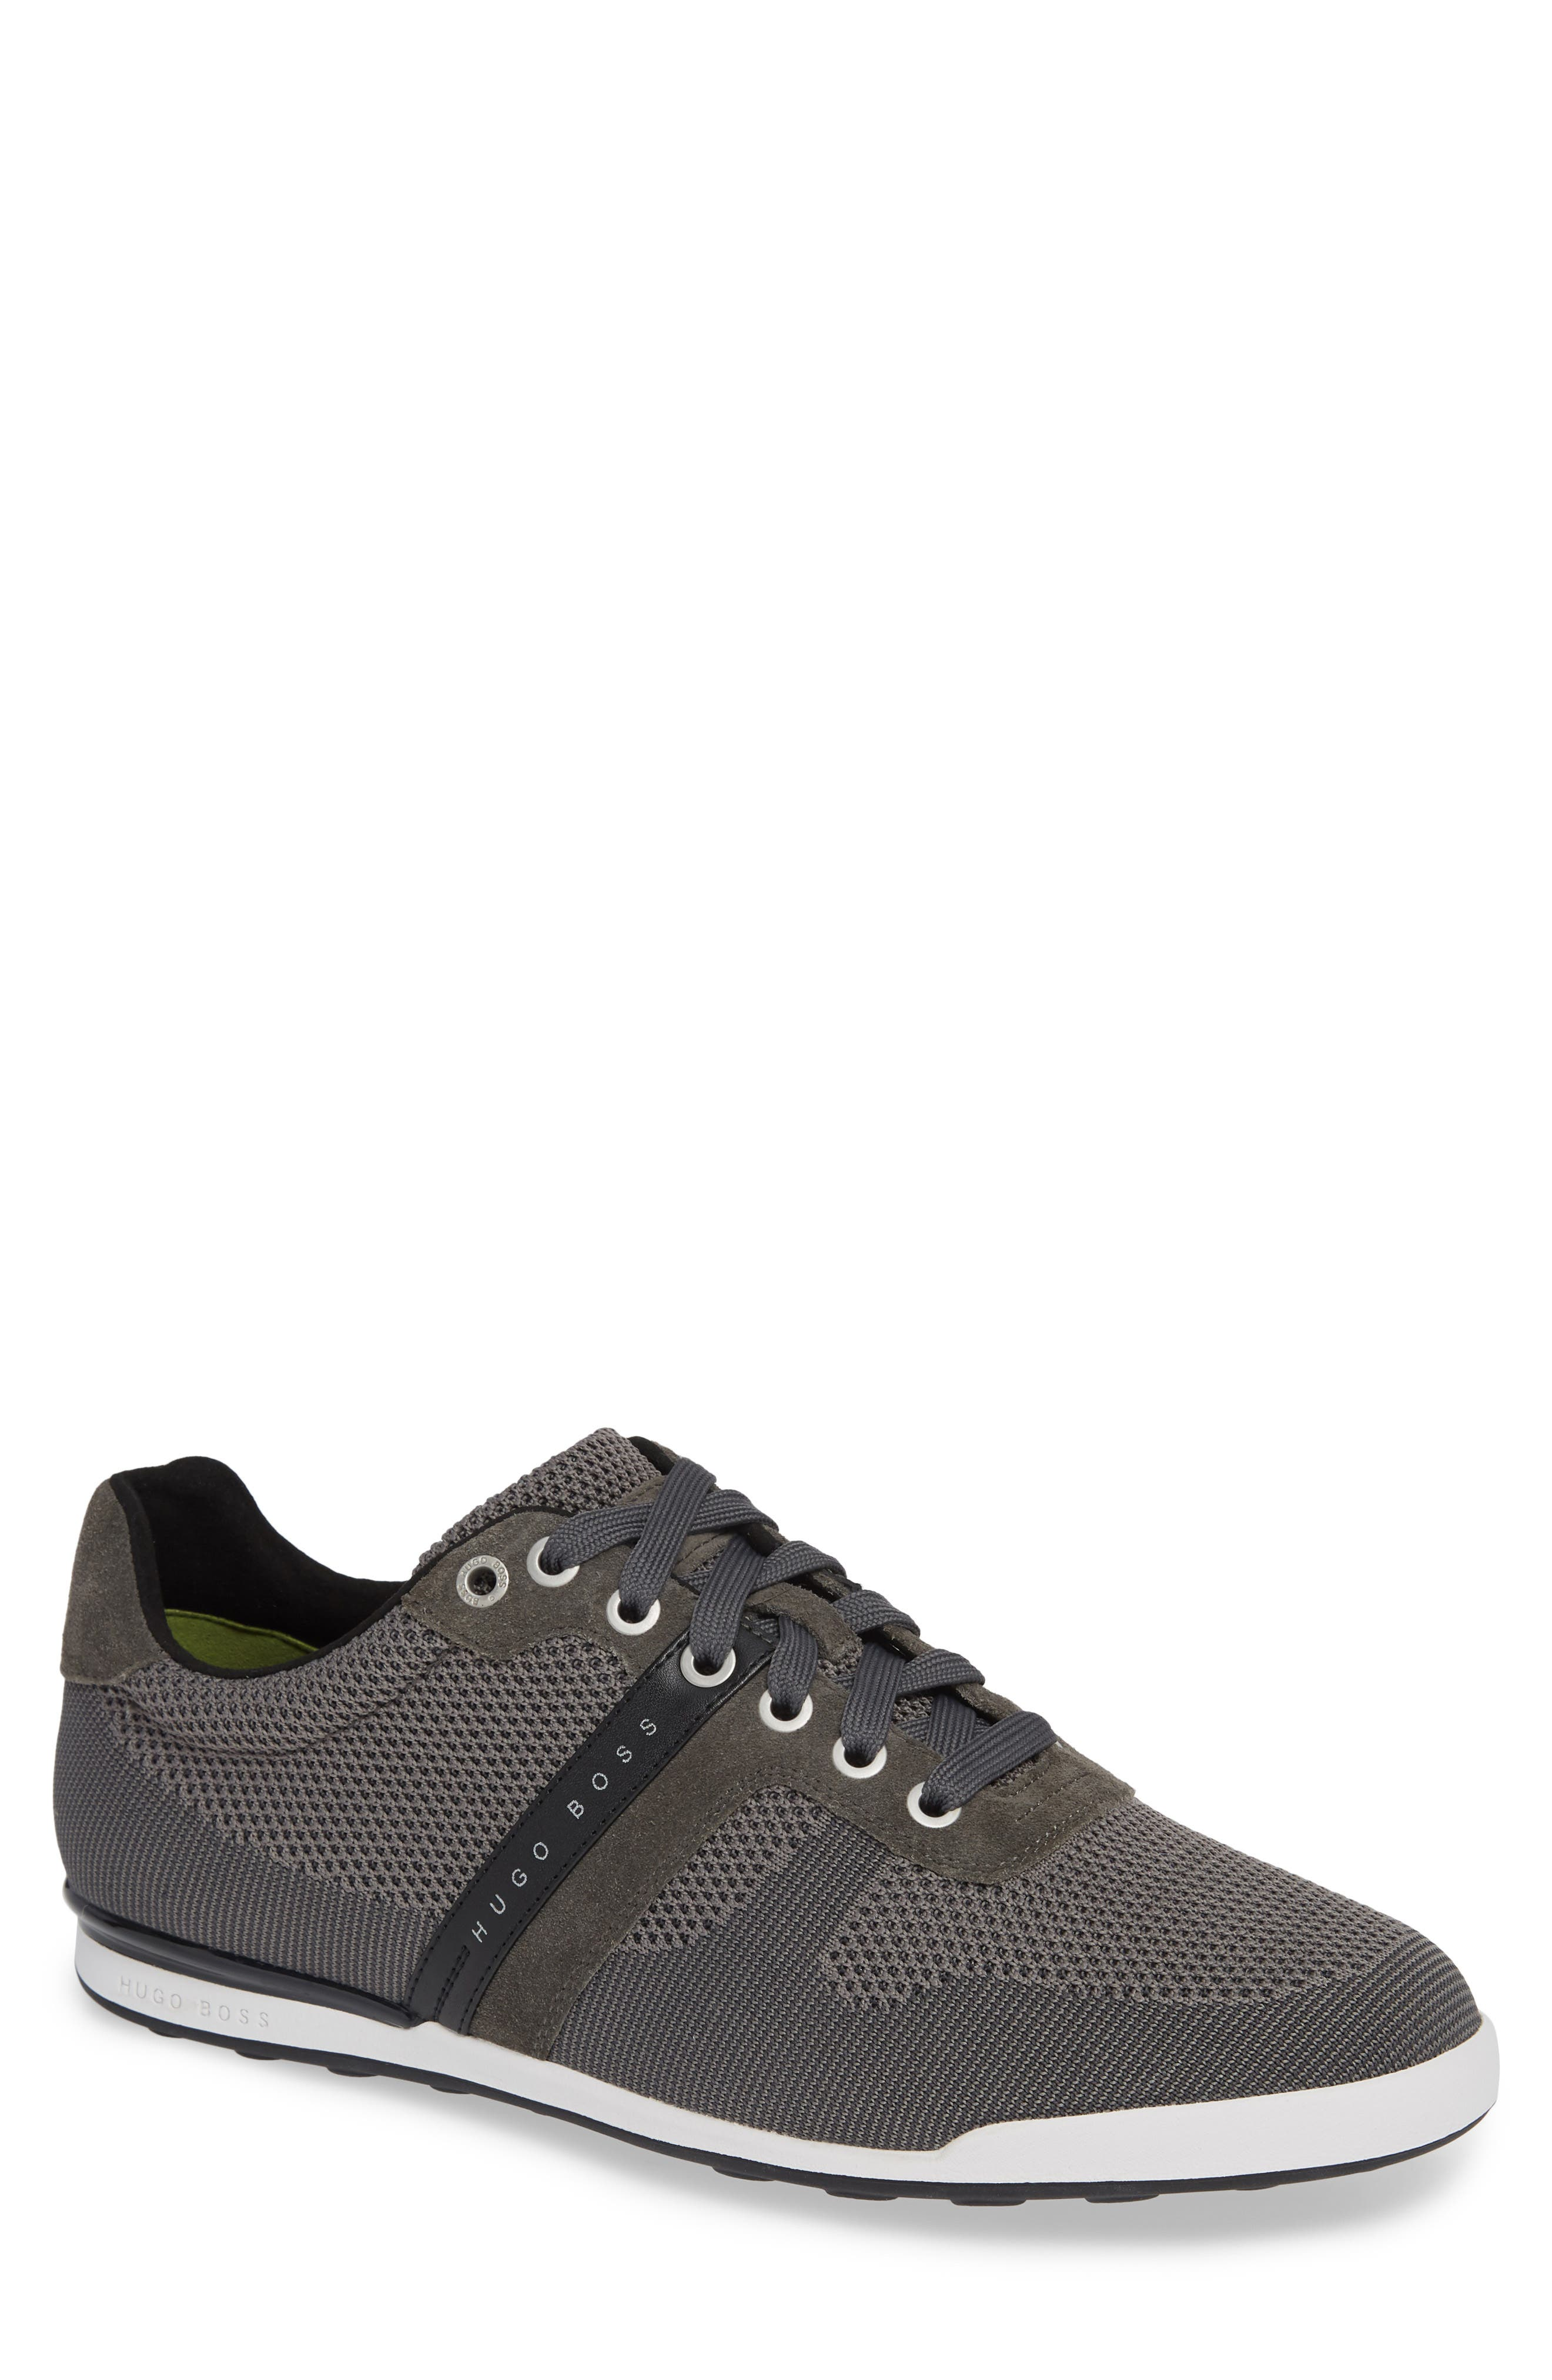 Hugo Boss Arkansas Lace-Up Sneaker,                             Main thumbnail 1, color,                             021